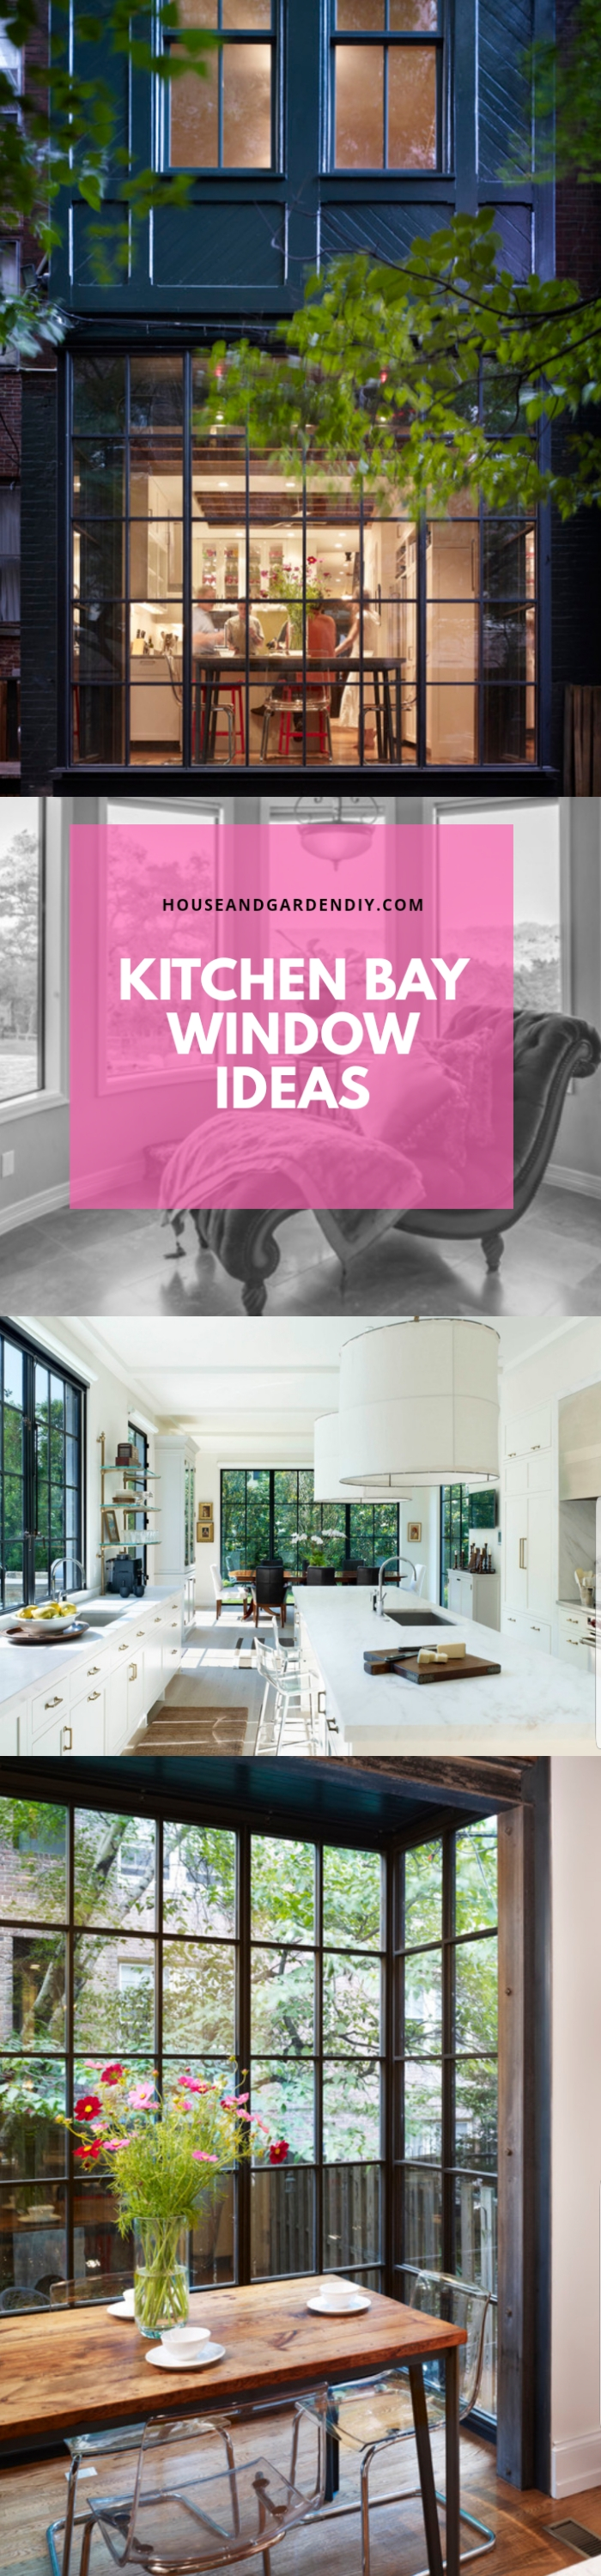 Kitchen bay window ideas